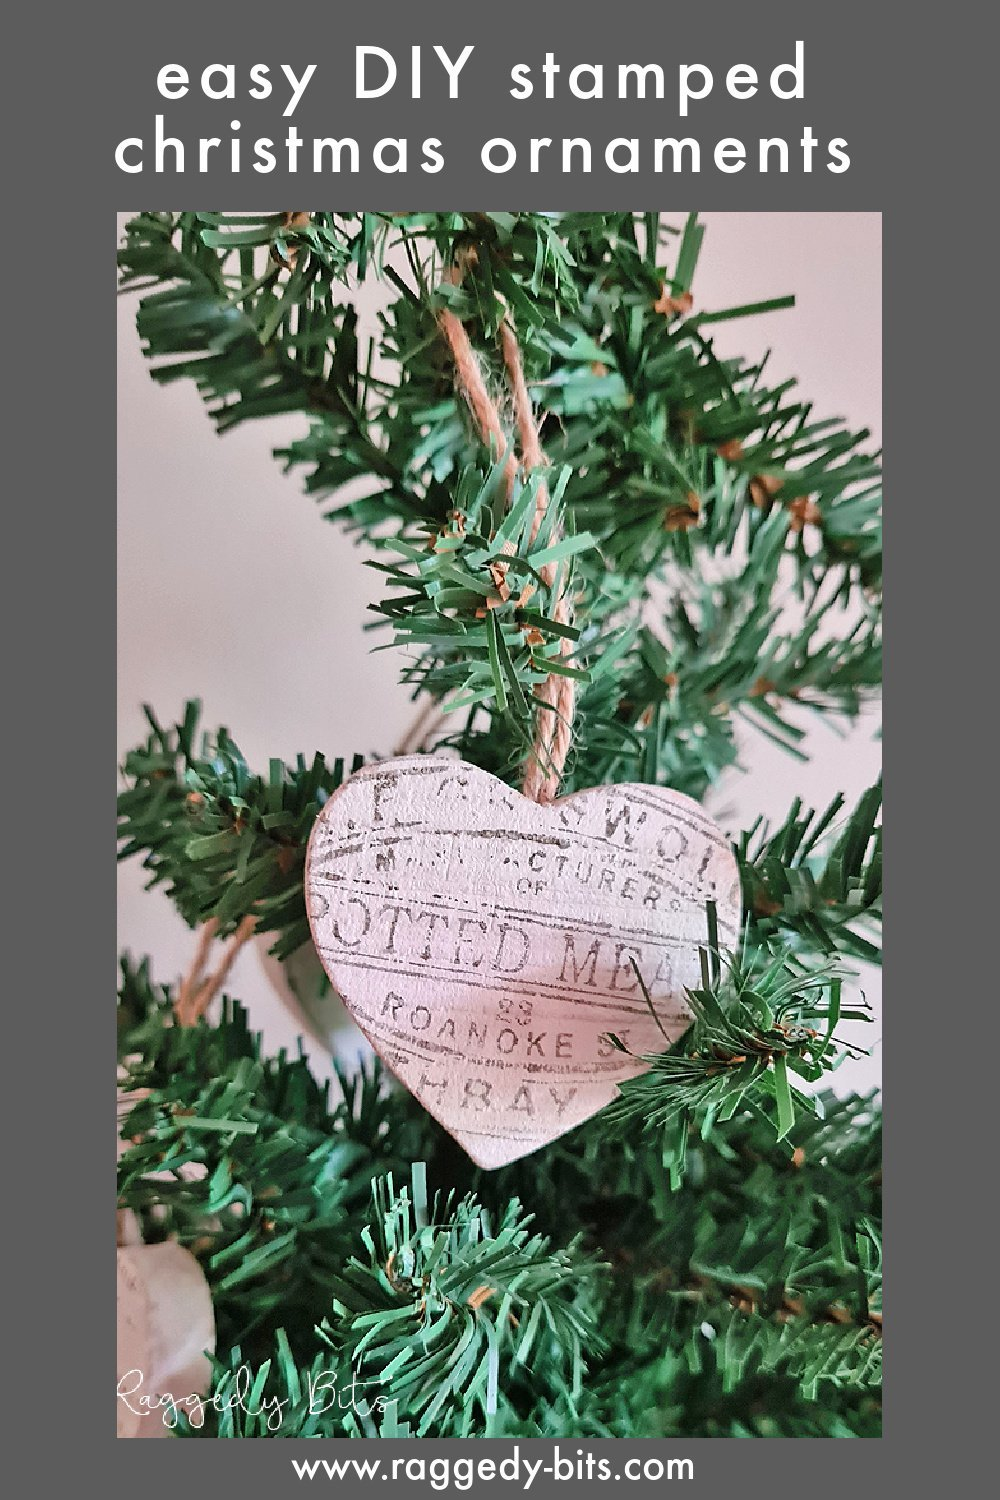 If your stuck for space or run out of time to set up your Christmas Tree, here is how to Make An Easy Farmhouse Table Top Christmas Tree using IOD Decor Stamp Crockery | www.raggedy-bits.com #raggedybits #DIY #christmastree #stamped #crockery #decoration #tabletoptree